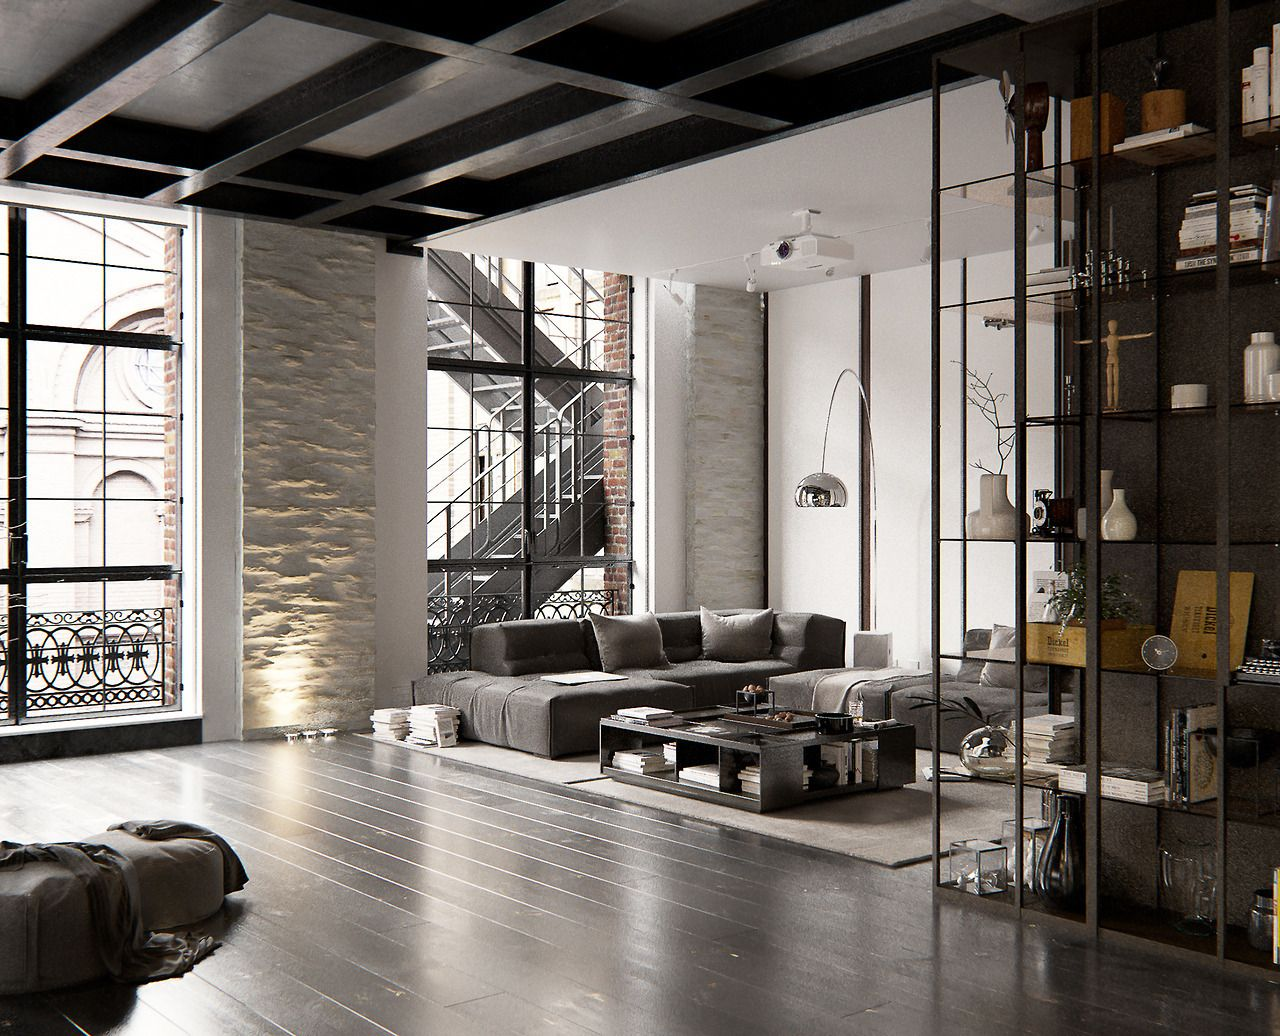 Gravity Home u2014 New York loft 3D